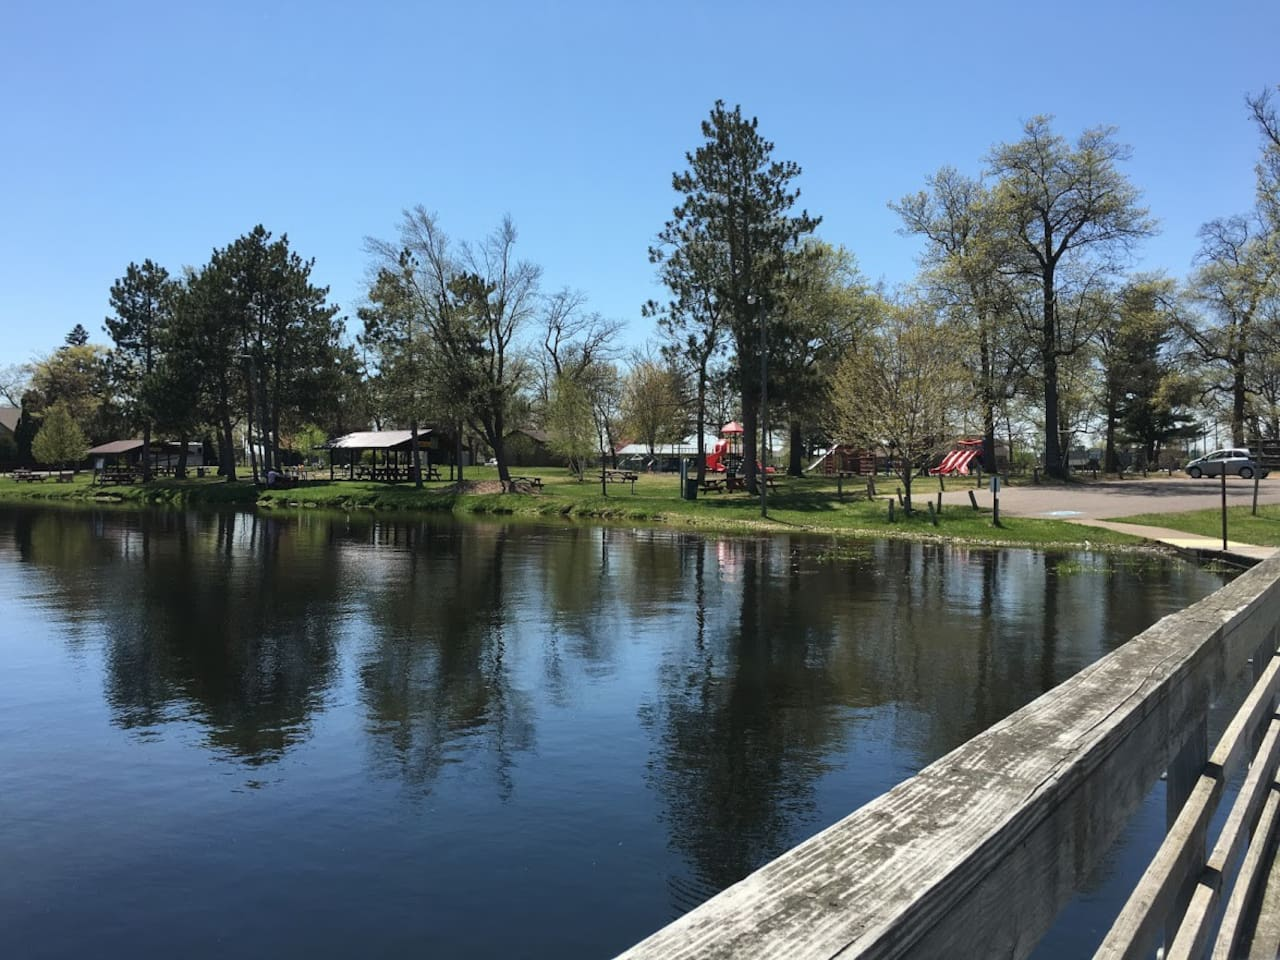 Crooked Lake Park is in the backyard of our retreat!  Great playground, beach, fishing pier, boat launch and picnic facilities with grills and covered picnic shelters...perfect for family reunions or other gatherings of family and friends!